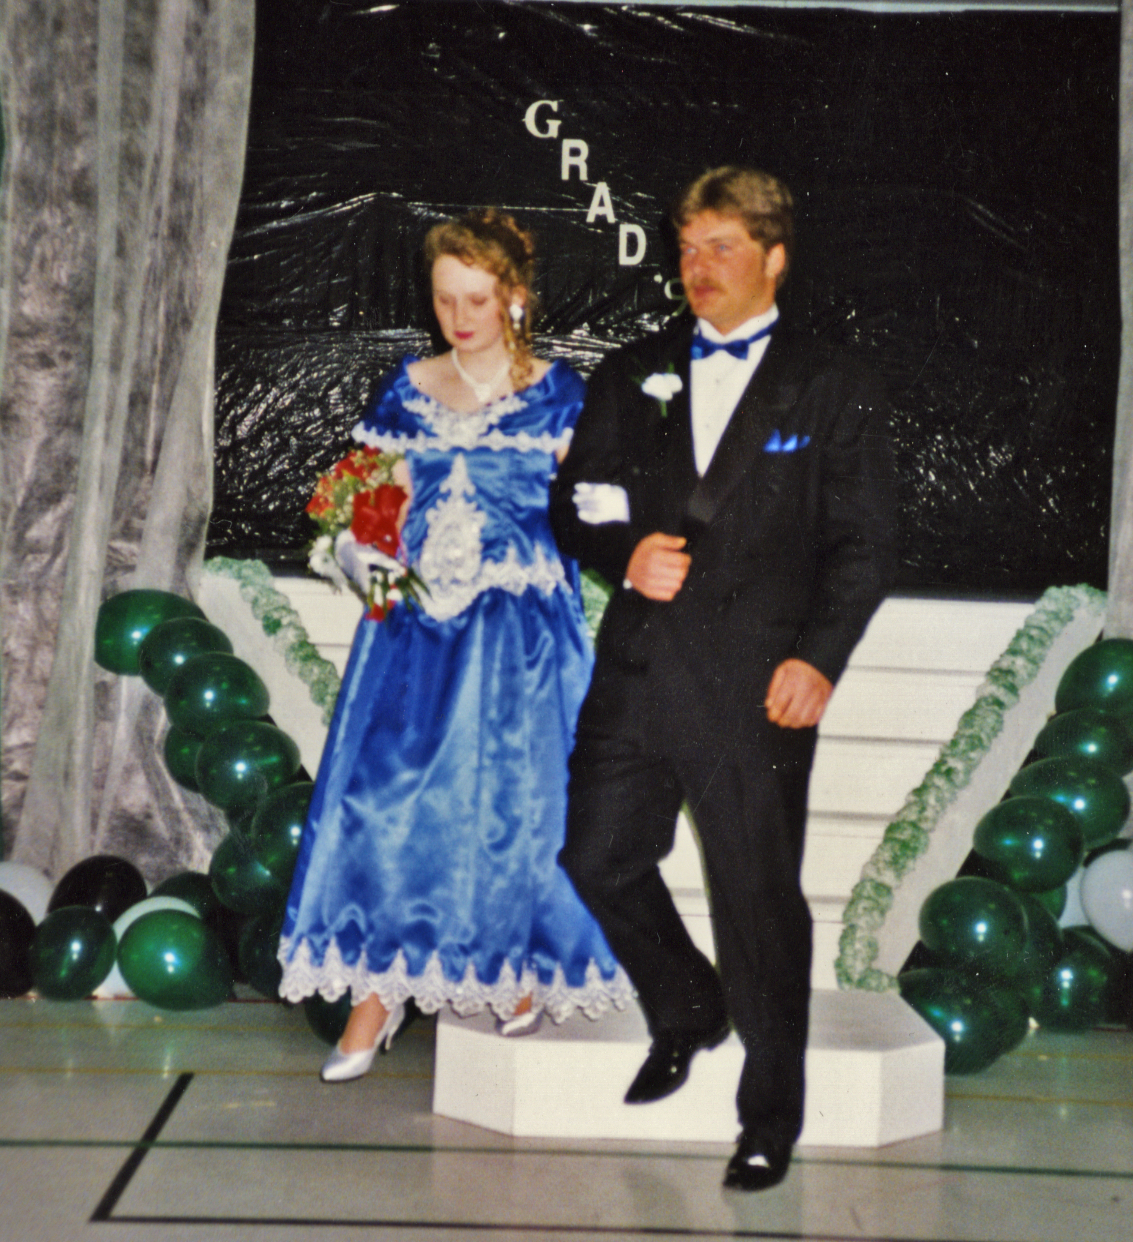 Jennifer Hillier-Penney and Dean Penney were high school sweethearts and had their first daughter, Marina, when Jennifer was 17. (Submitted by Vicki Burden)